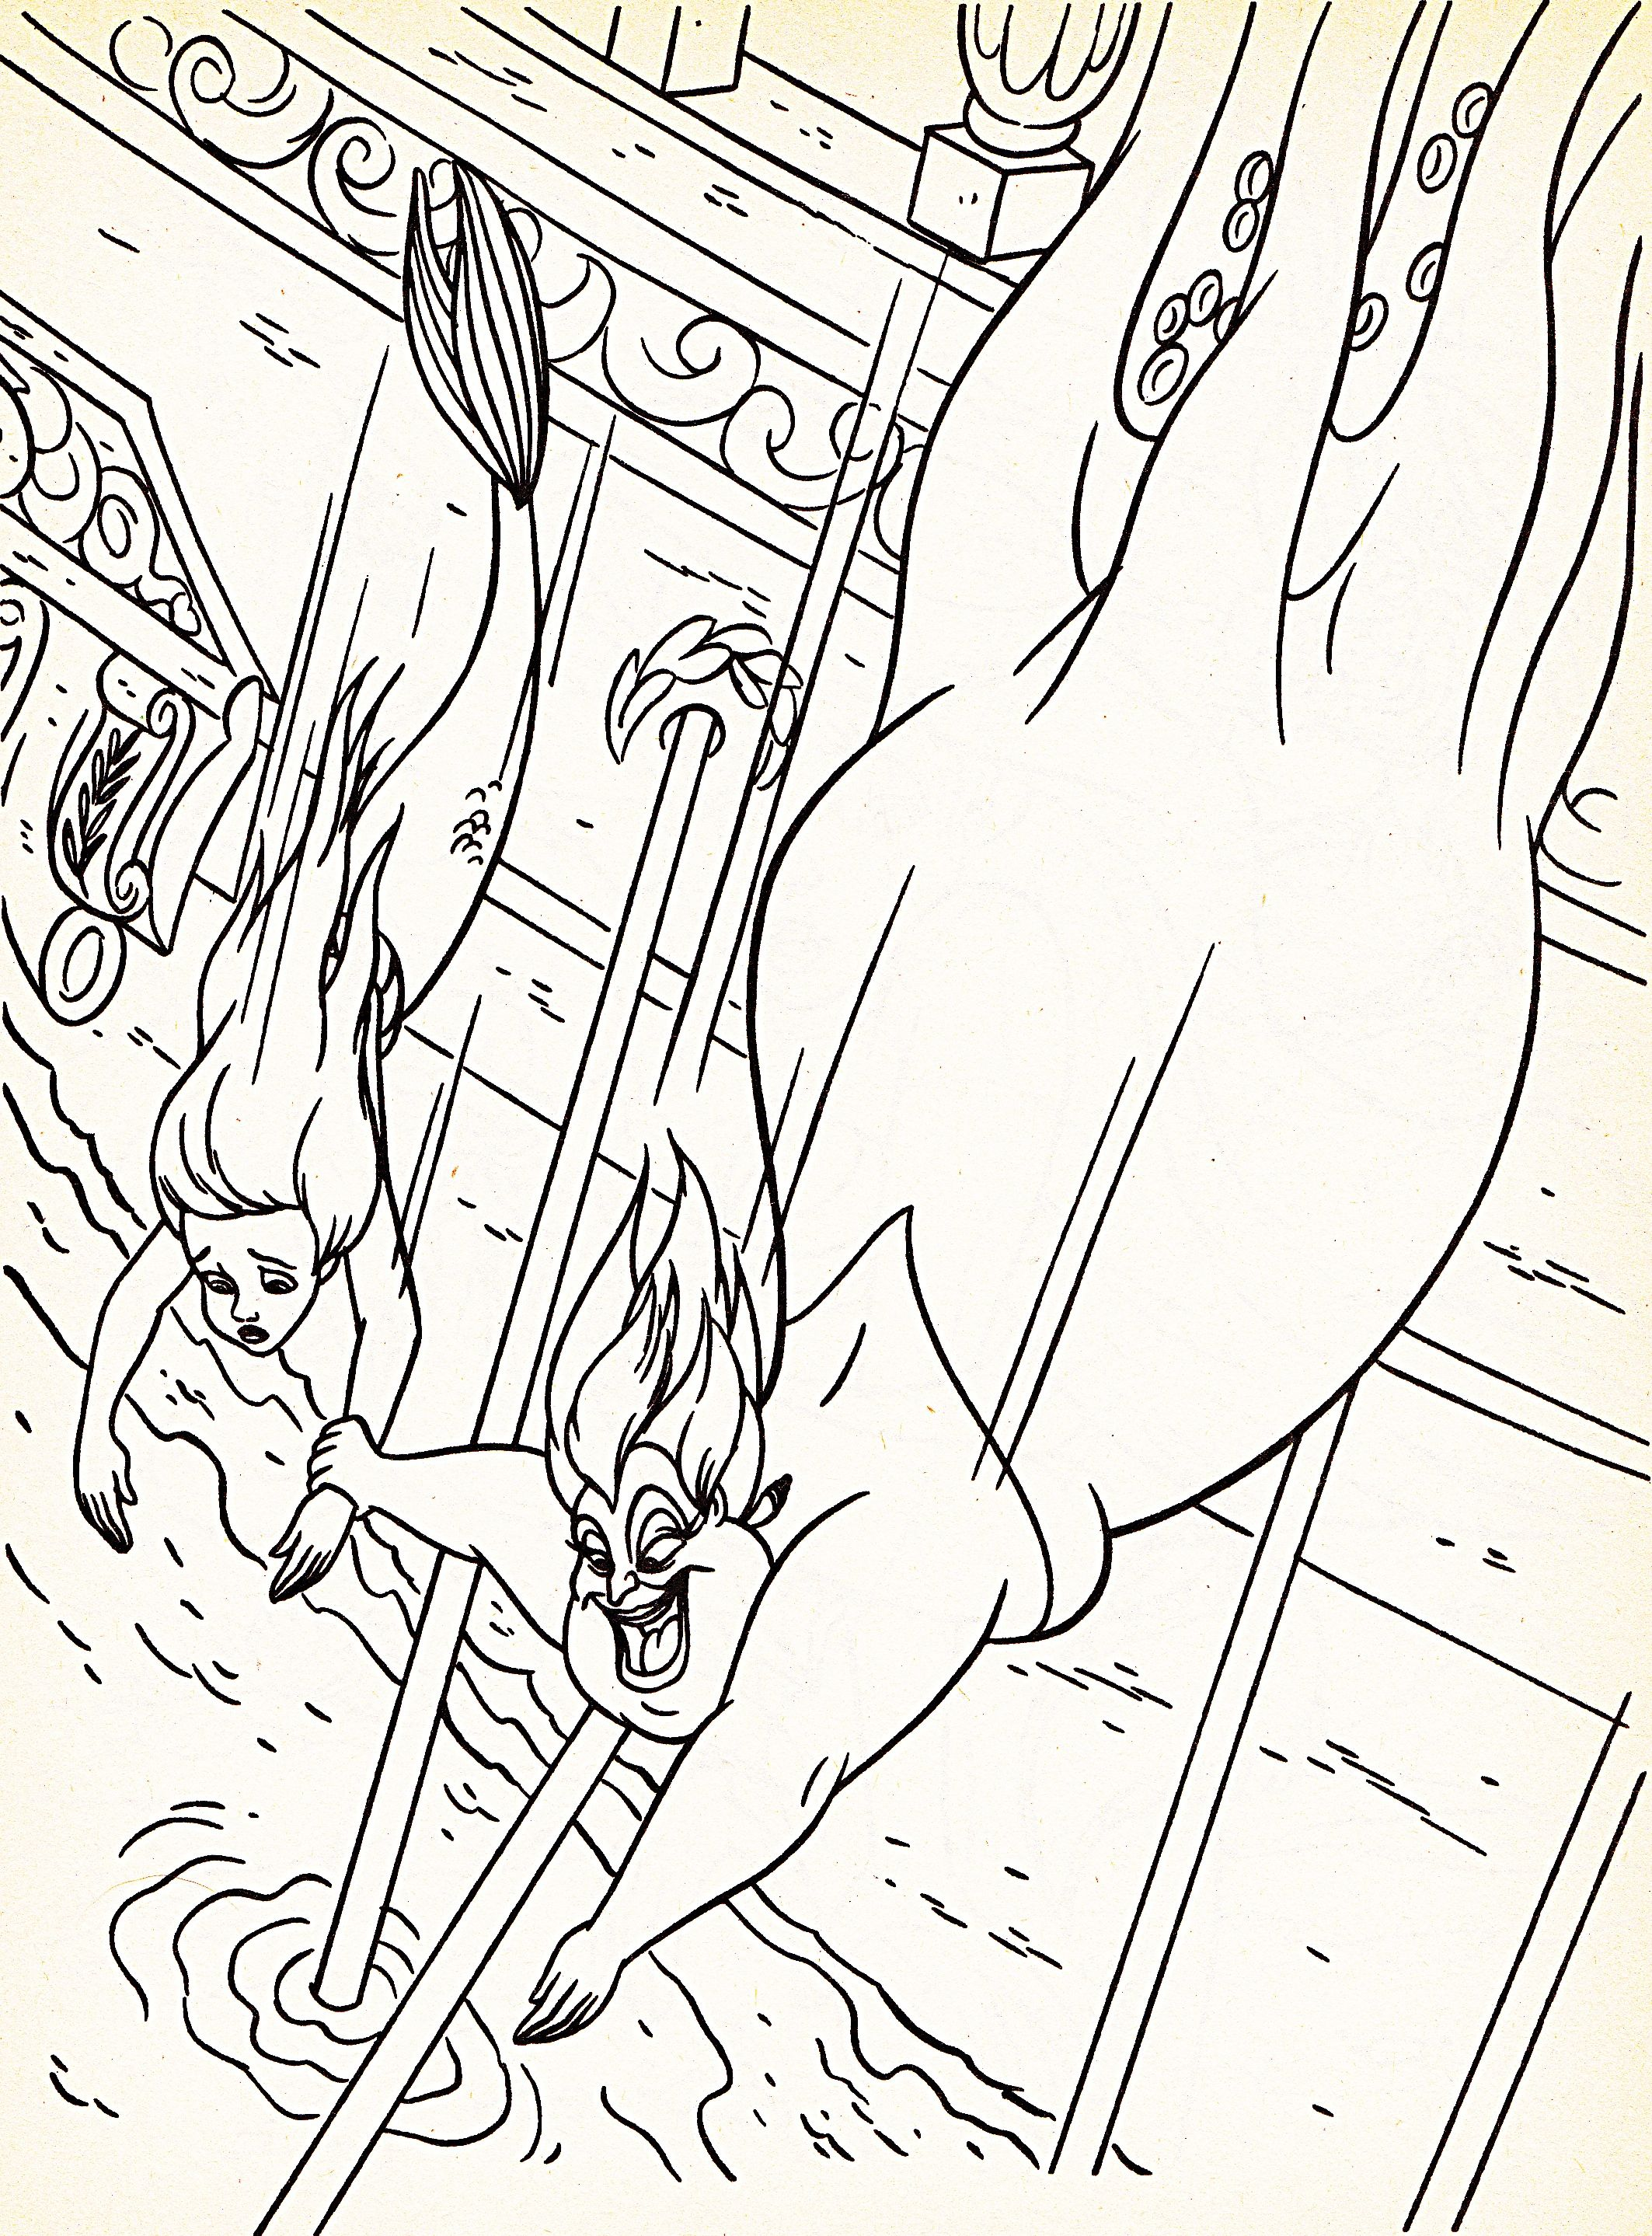 Disney Coloring Pages Printable. Walt Disney Coloring Pages